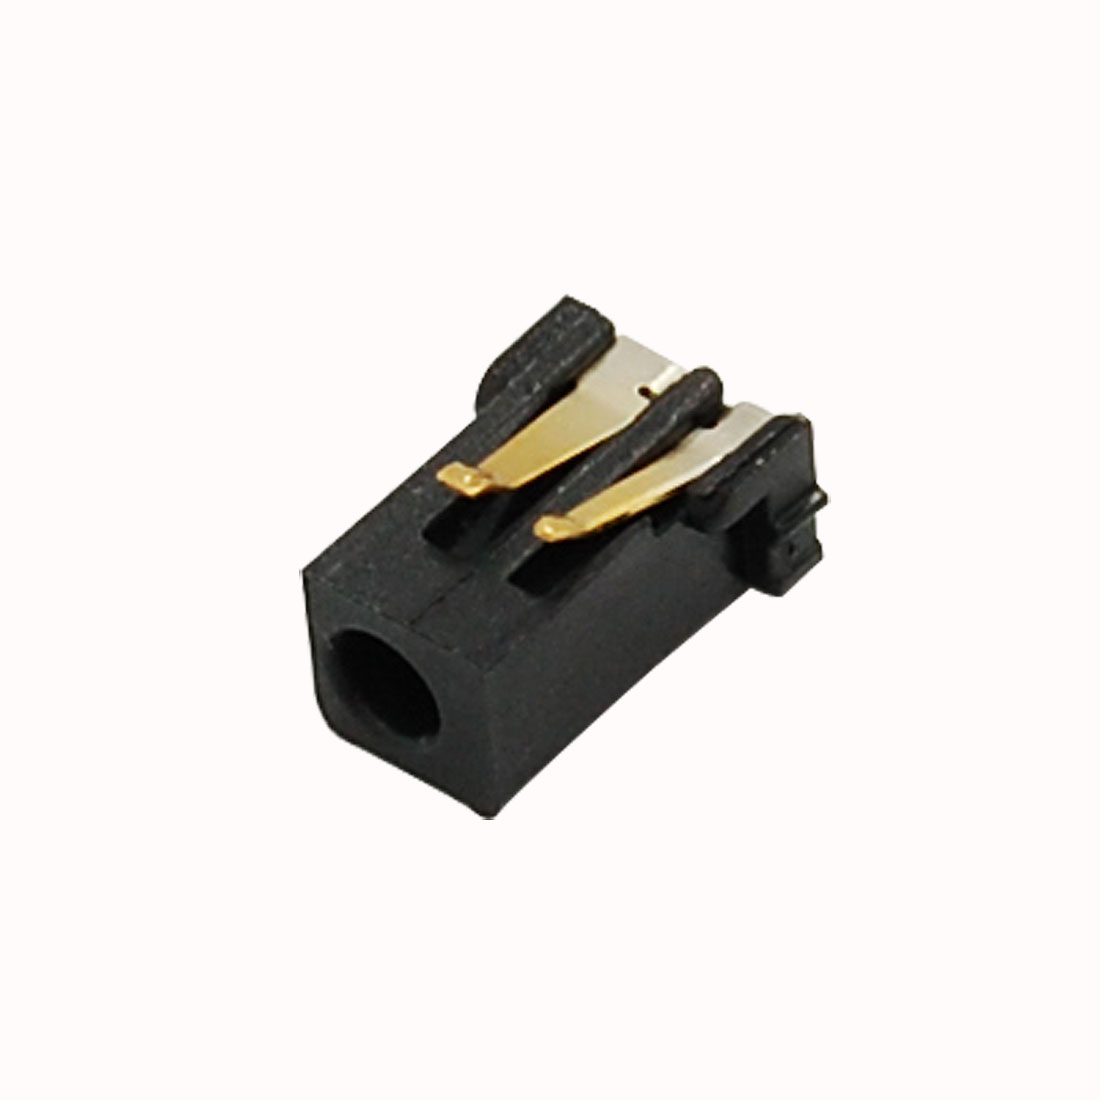 Replacement Charger Jack Port Connector for Nokia N95